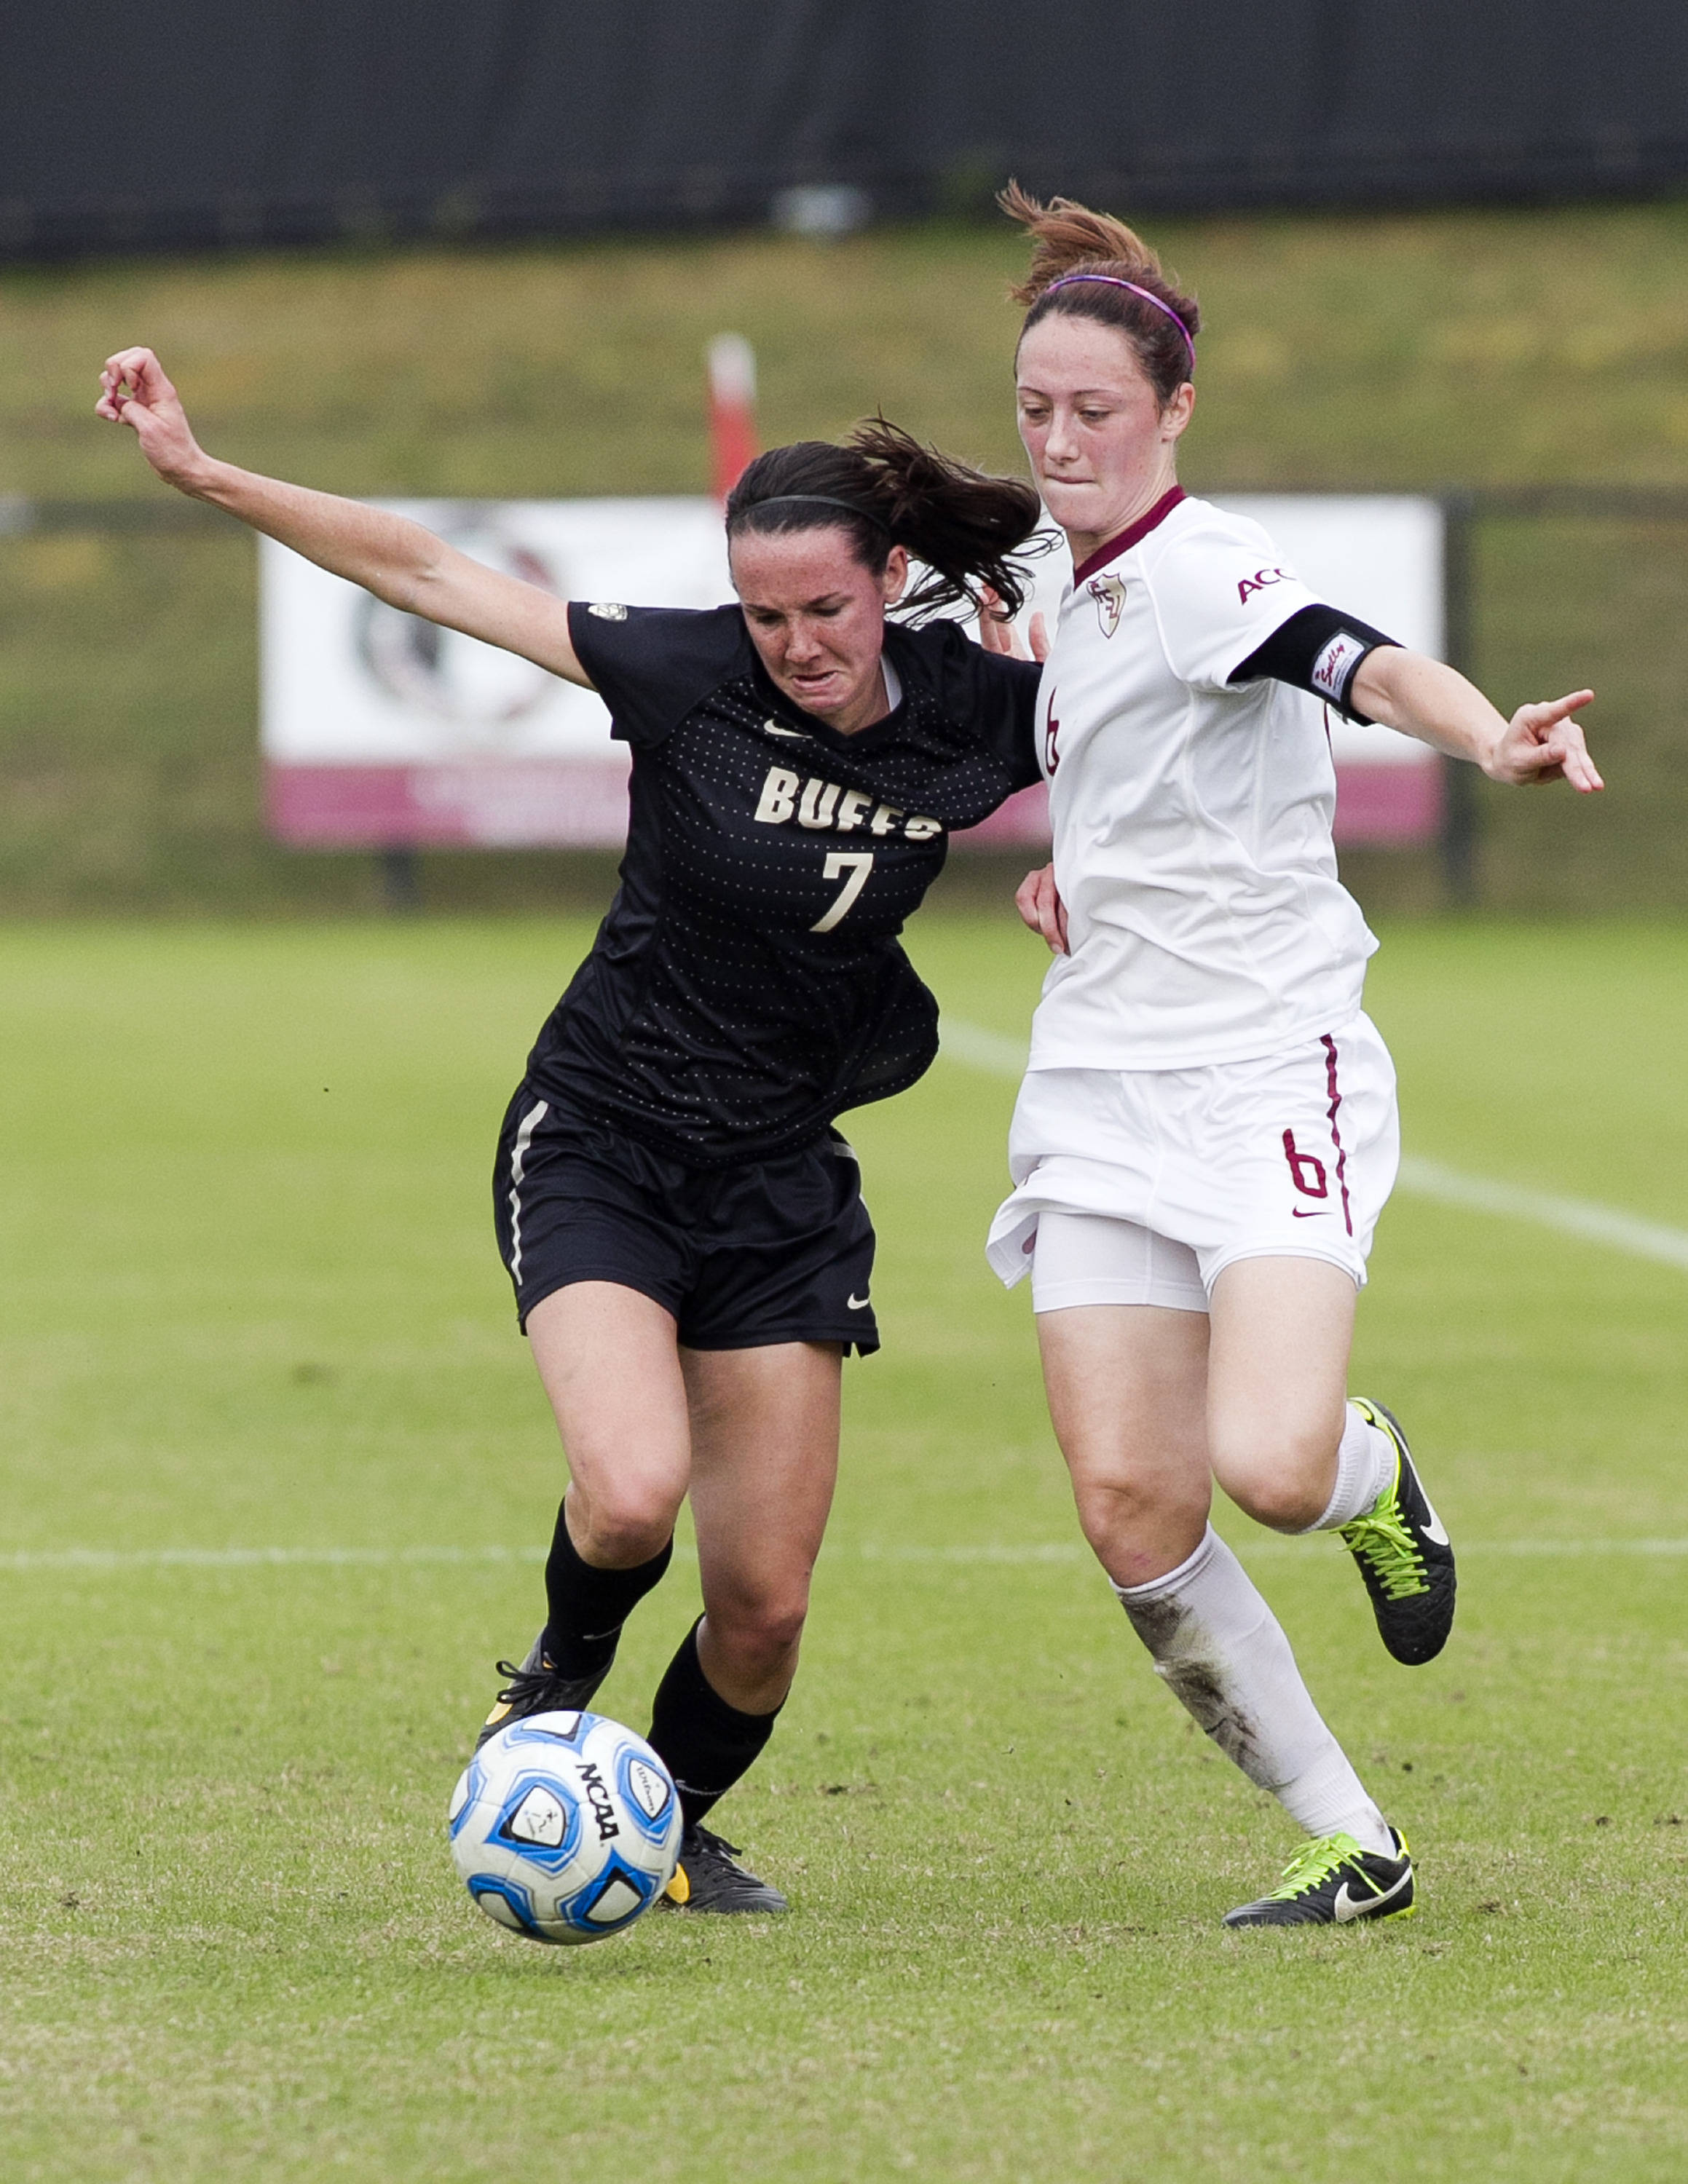 Megan Campbell (6), FSU vs Colorado, 11-23-13, 3rd round NCAA Tournament (Photo by Steve Musco)